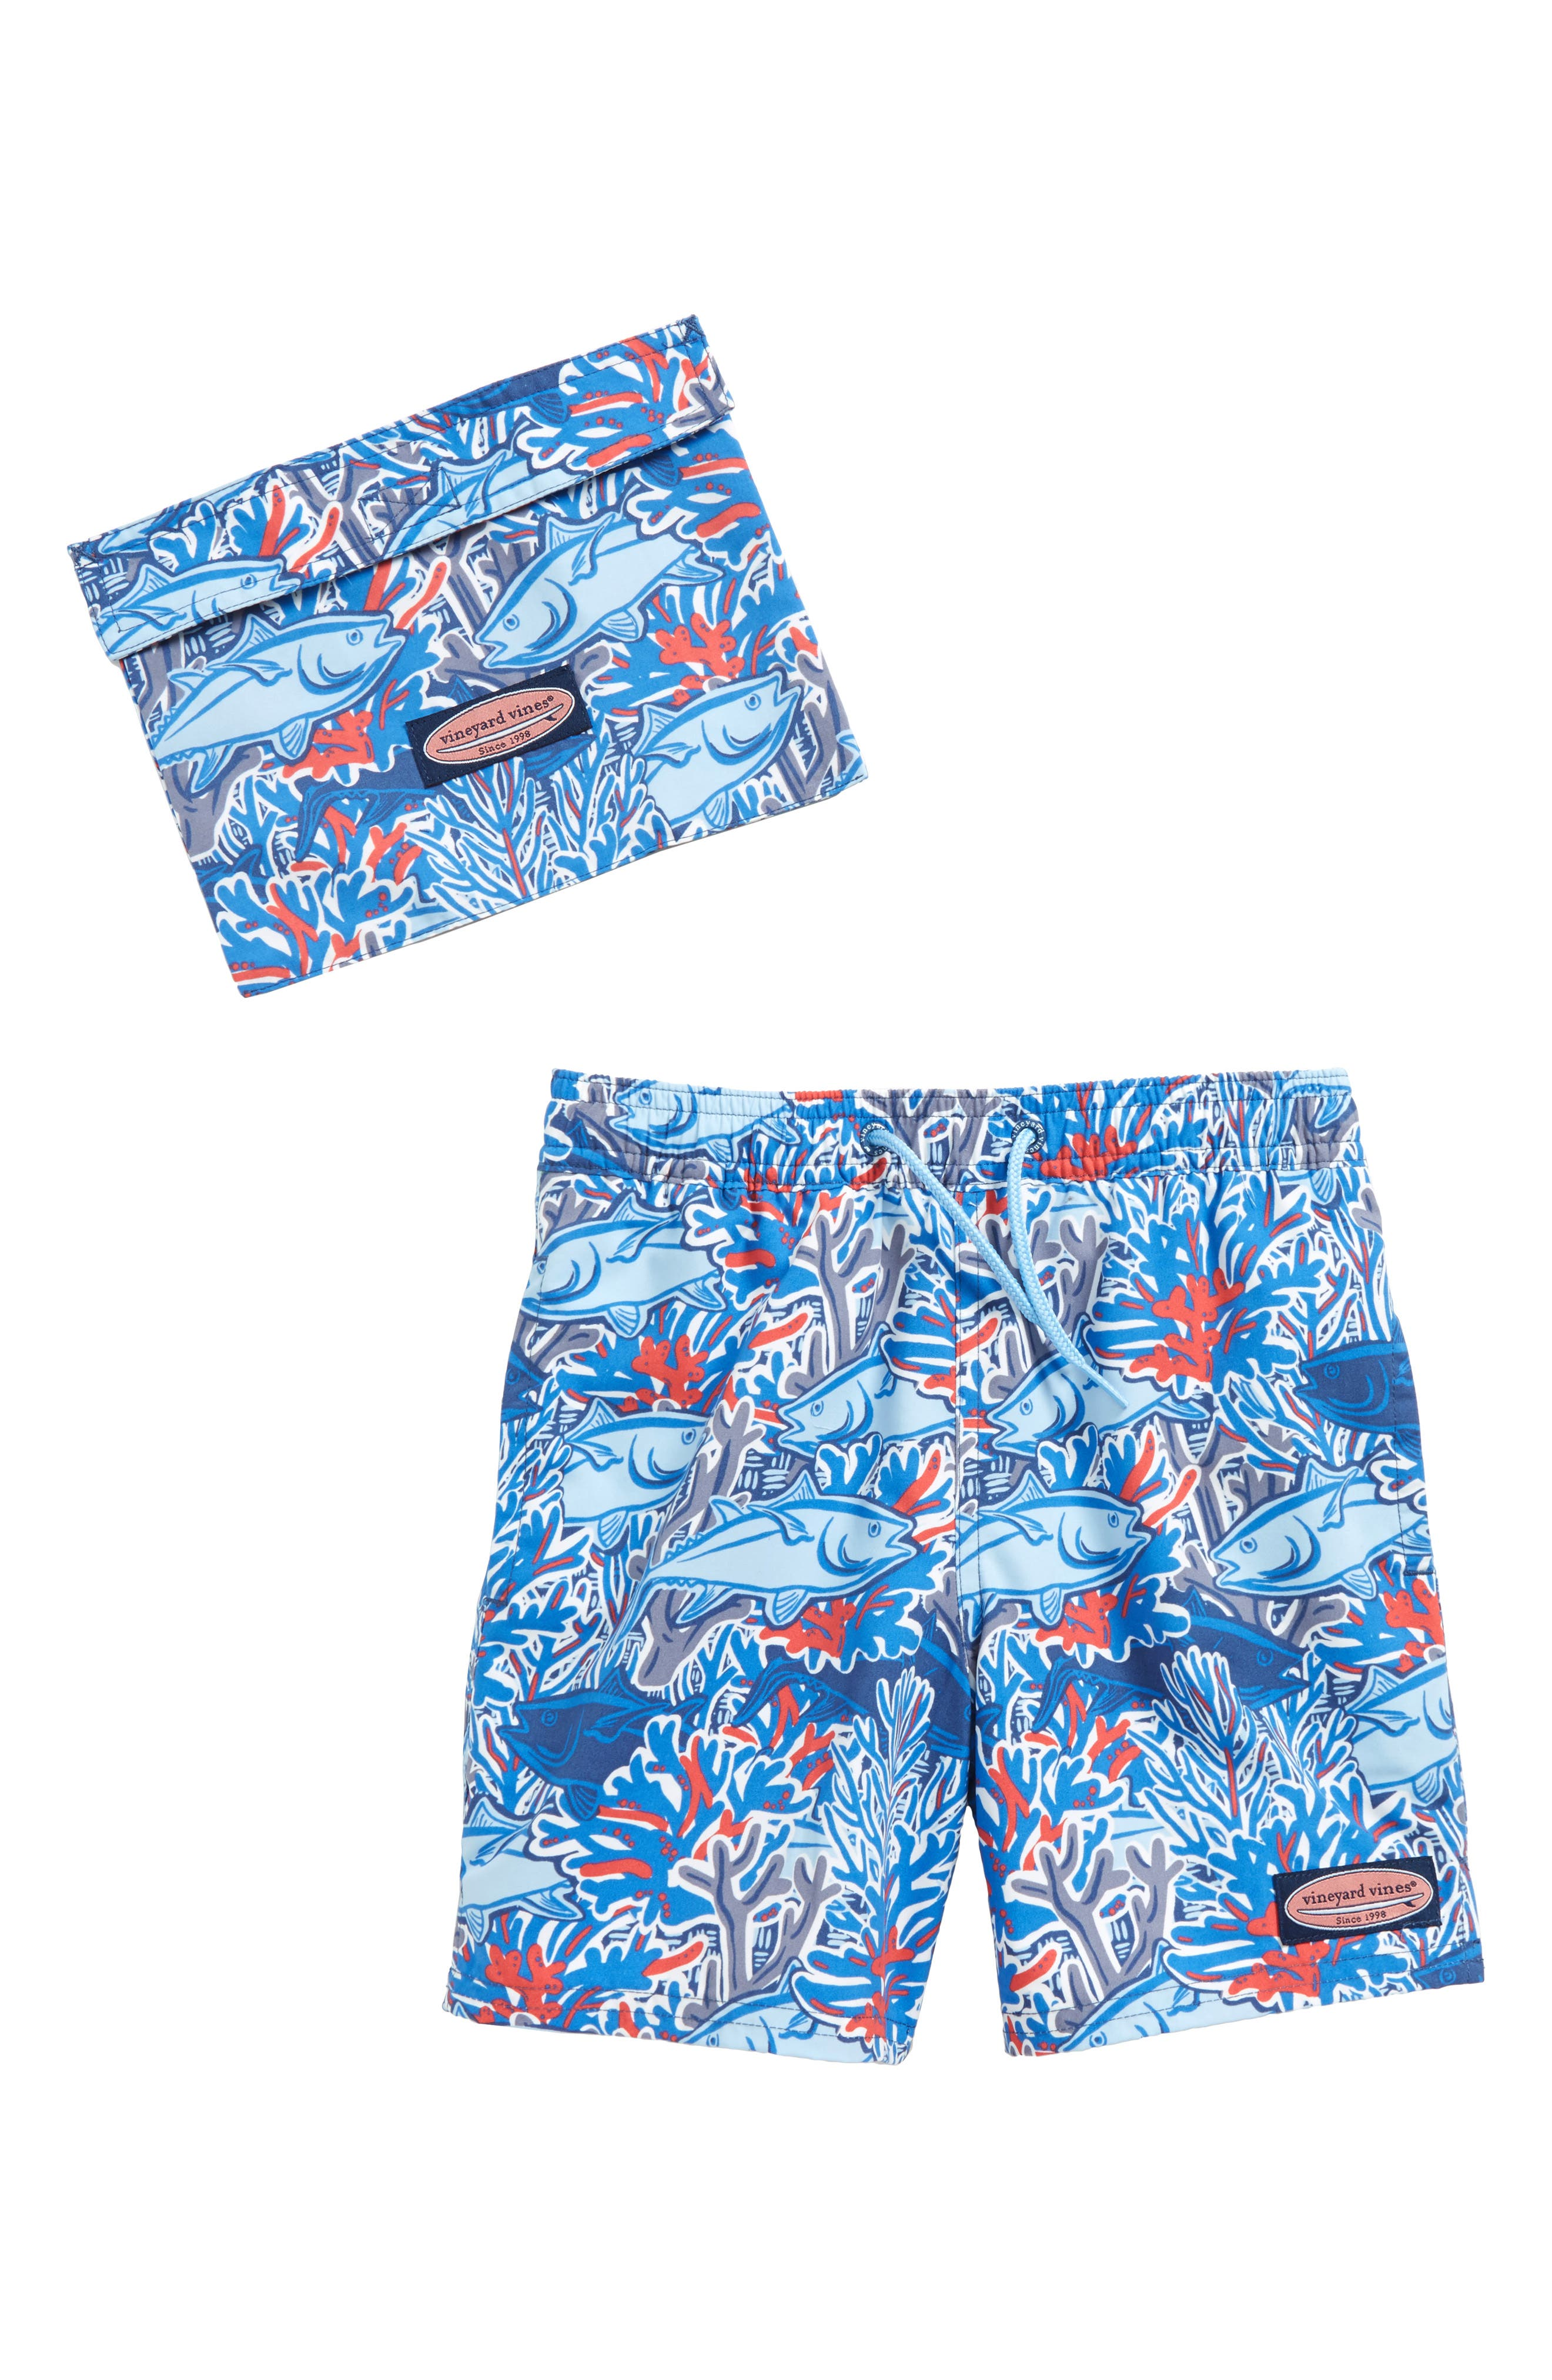 Chappy Tuna in Coral Swim Trunks,                             Main thumbnail 1, color,